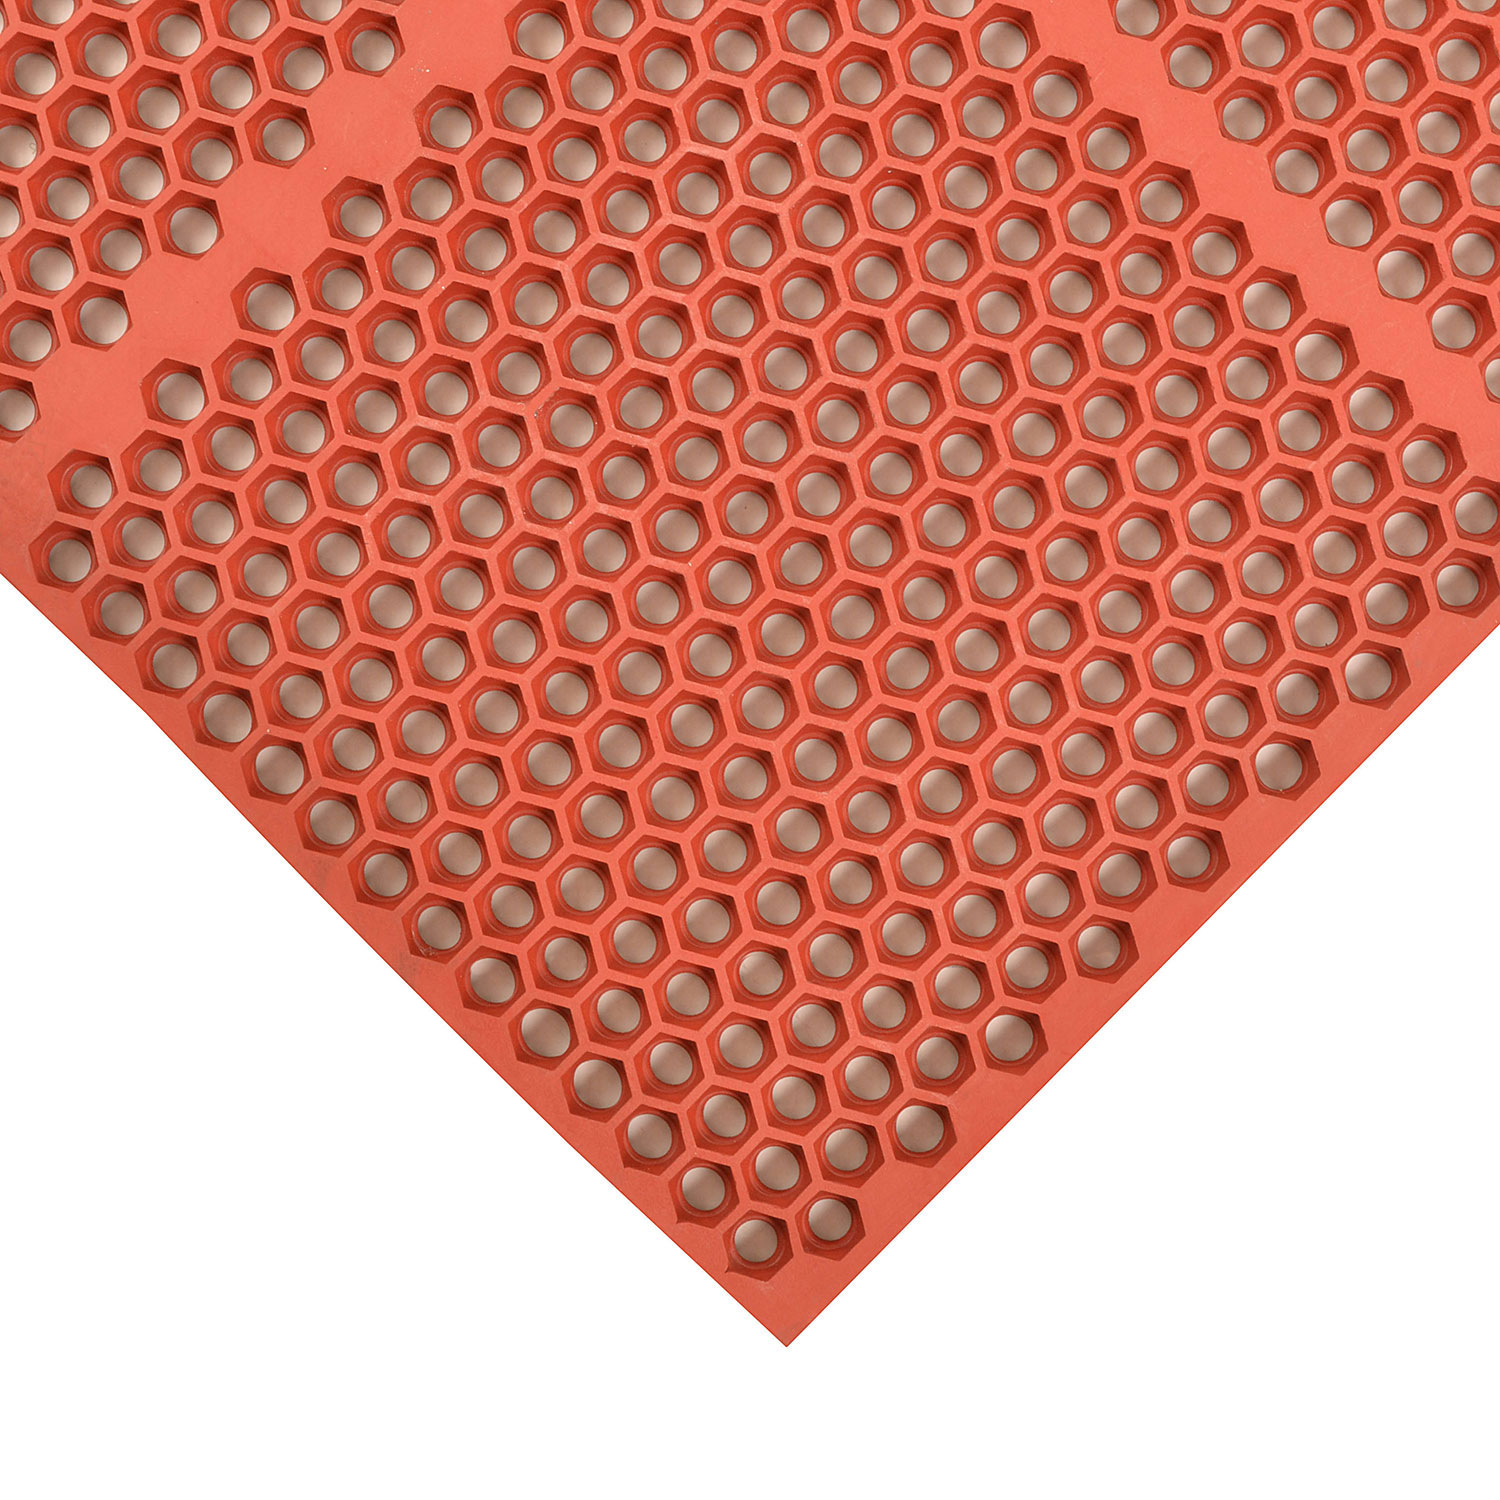 NoTrax 406182 Optimat Grease-Proof Floor Mat, 36 x 24 in, 1/2 in Thick, Red